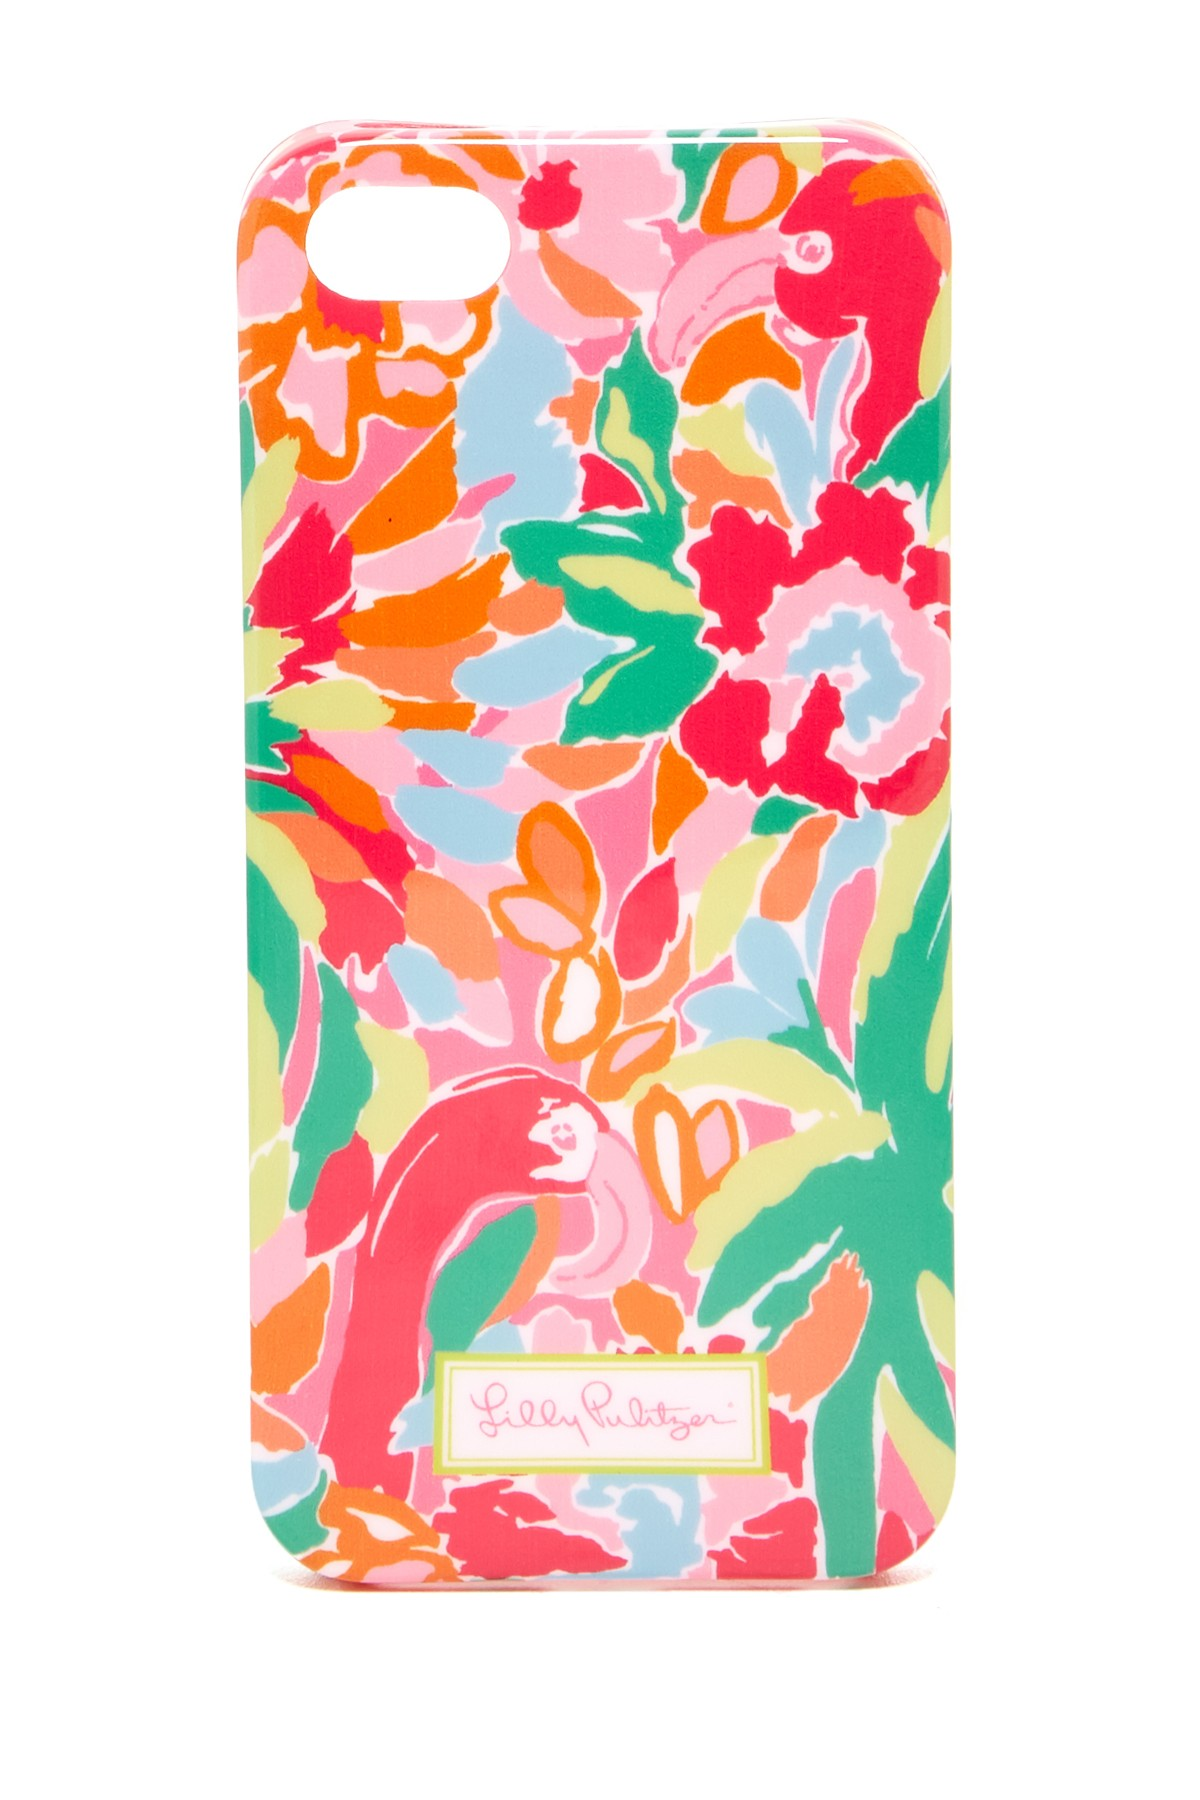 Lilly Pulitzer Phone Case | Lilly Pulitzer Iphone 4s Cases | Lilly Iphone 5 Case